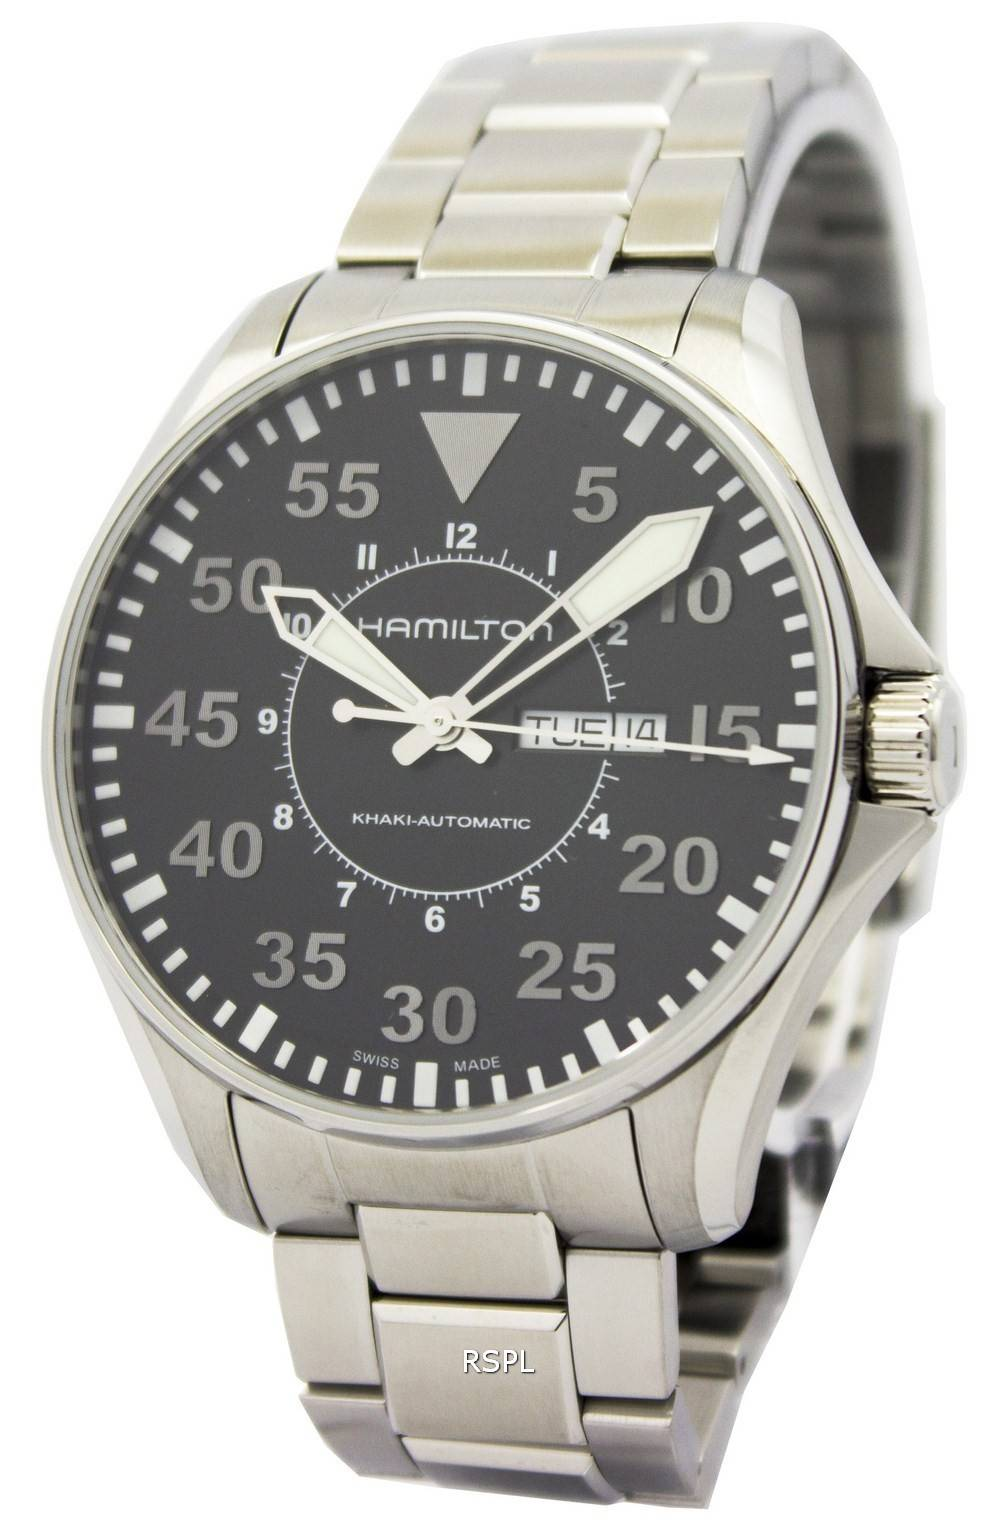 Montre Hamilton Khaki Aviation pilote automatique H64715135 masculin